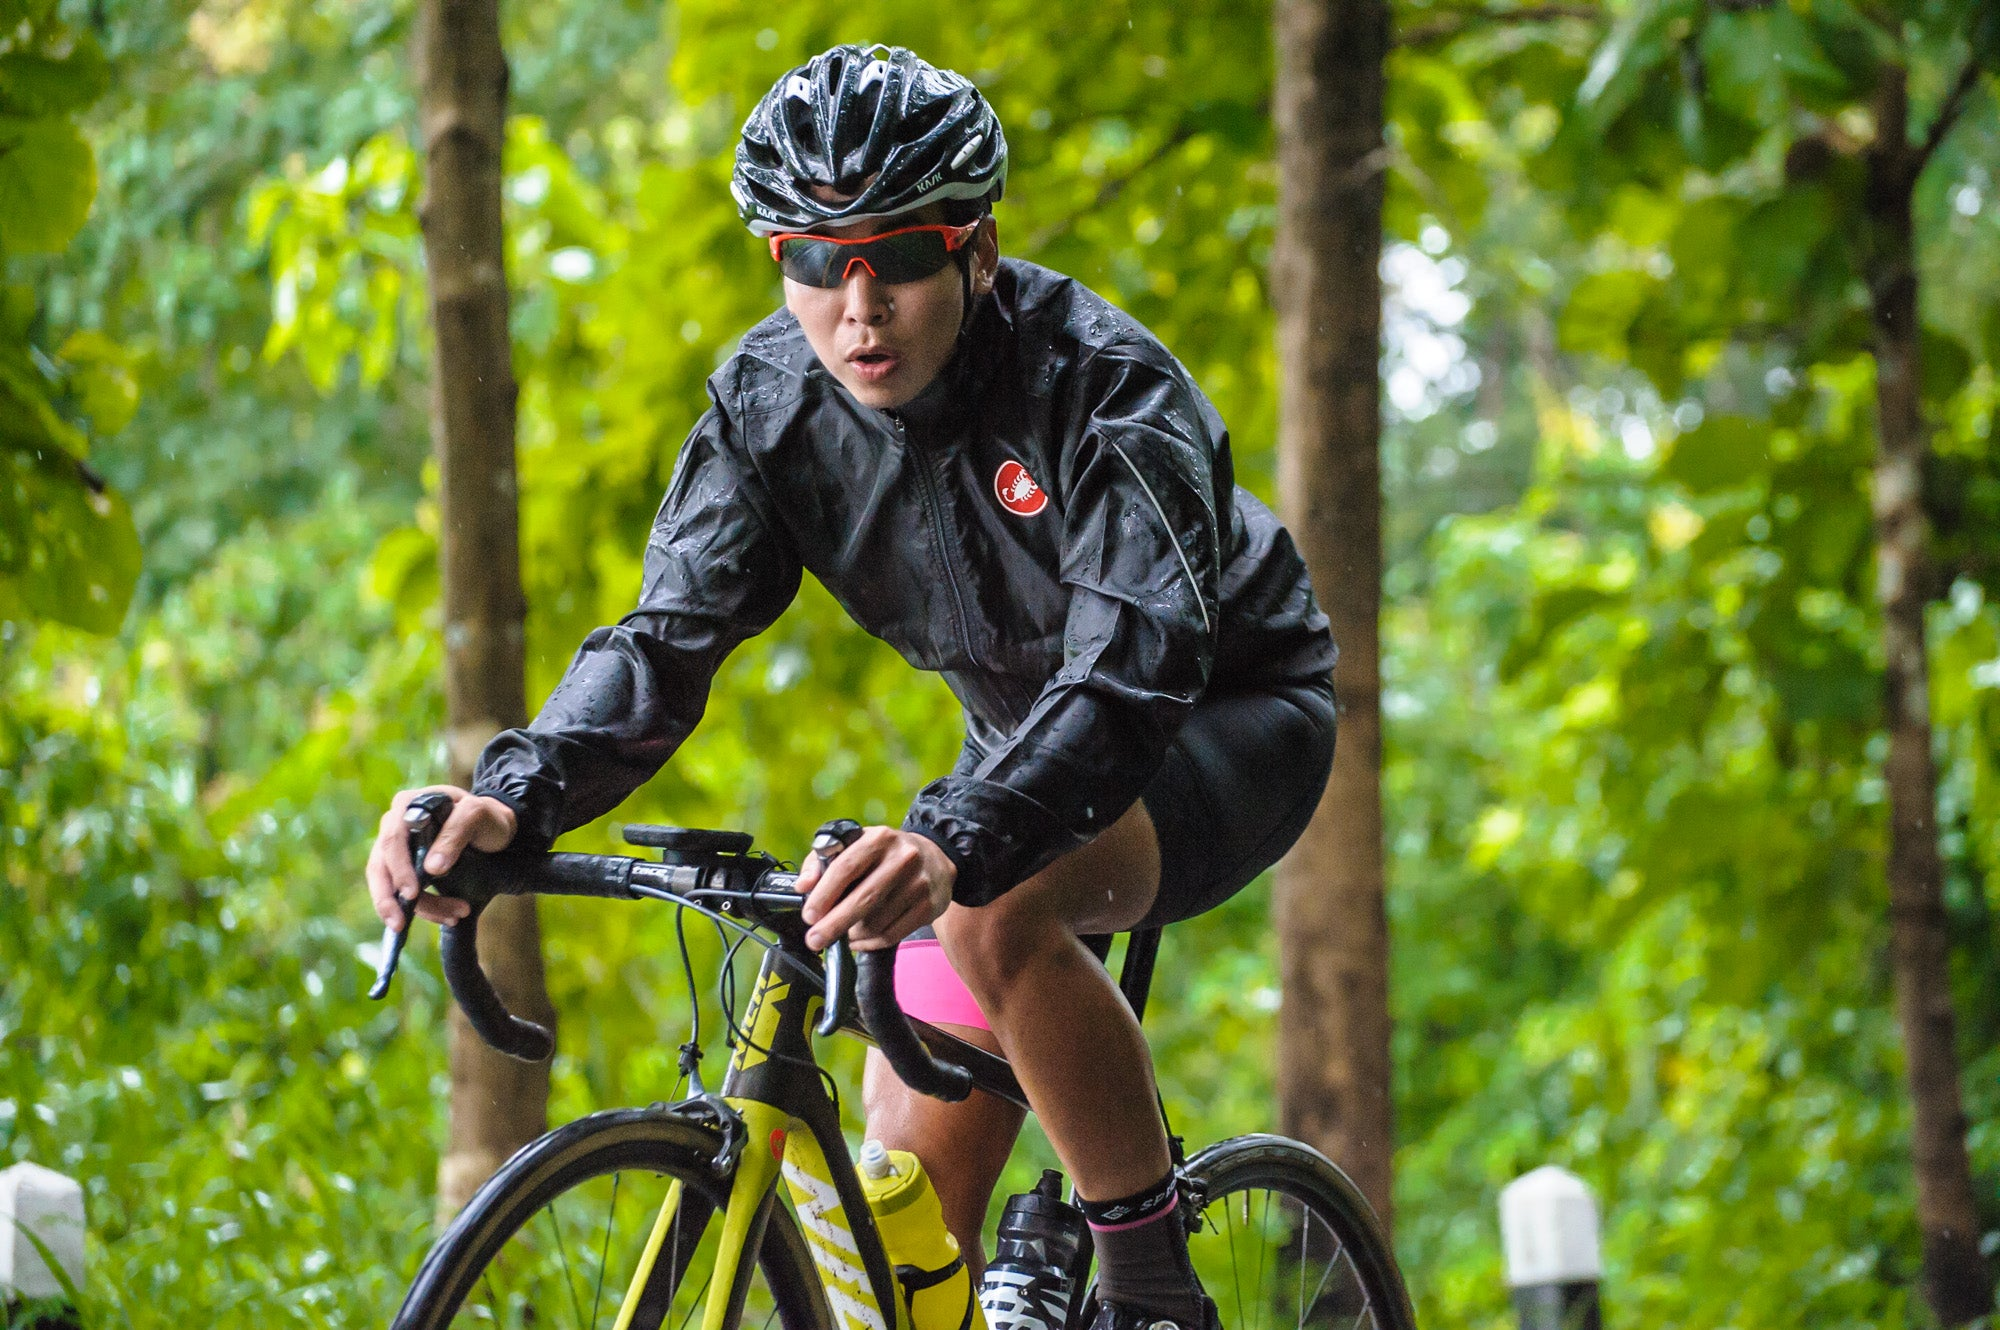 Nich cycling cycling team road bike thailand